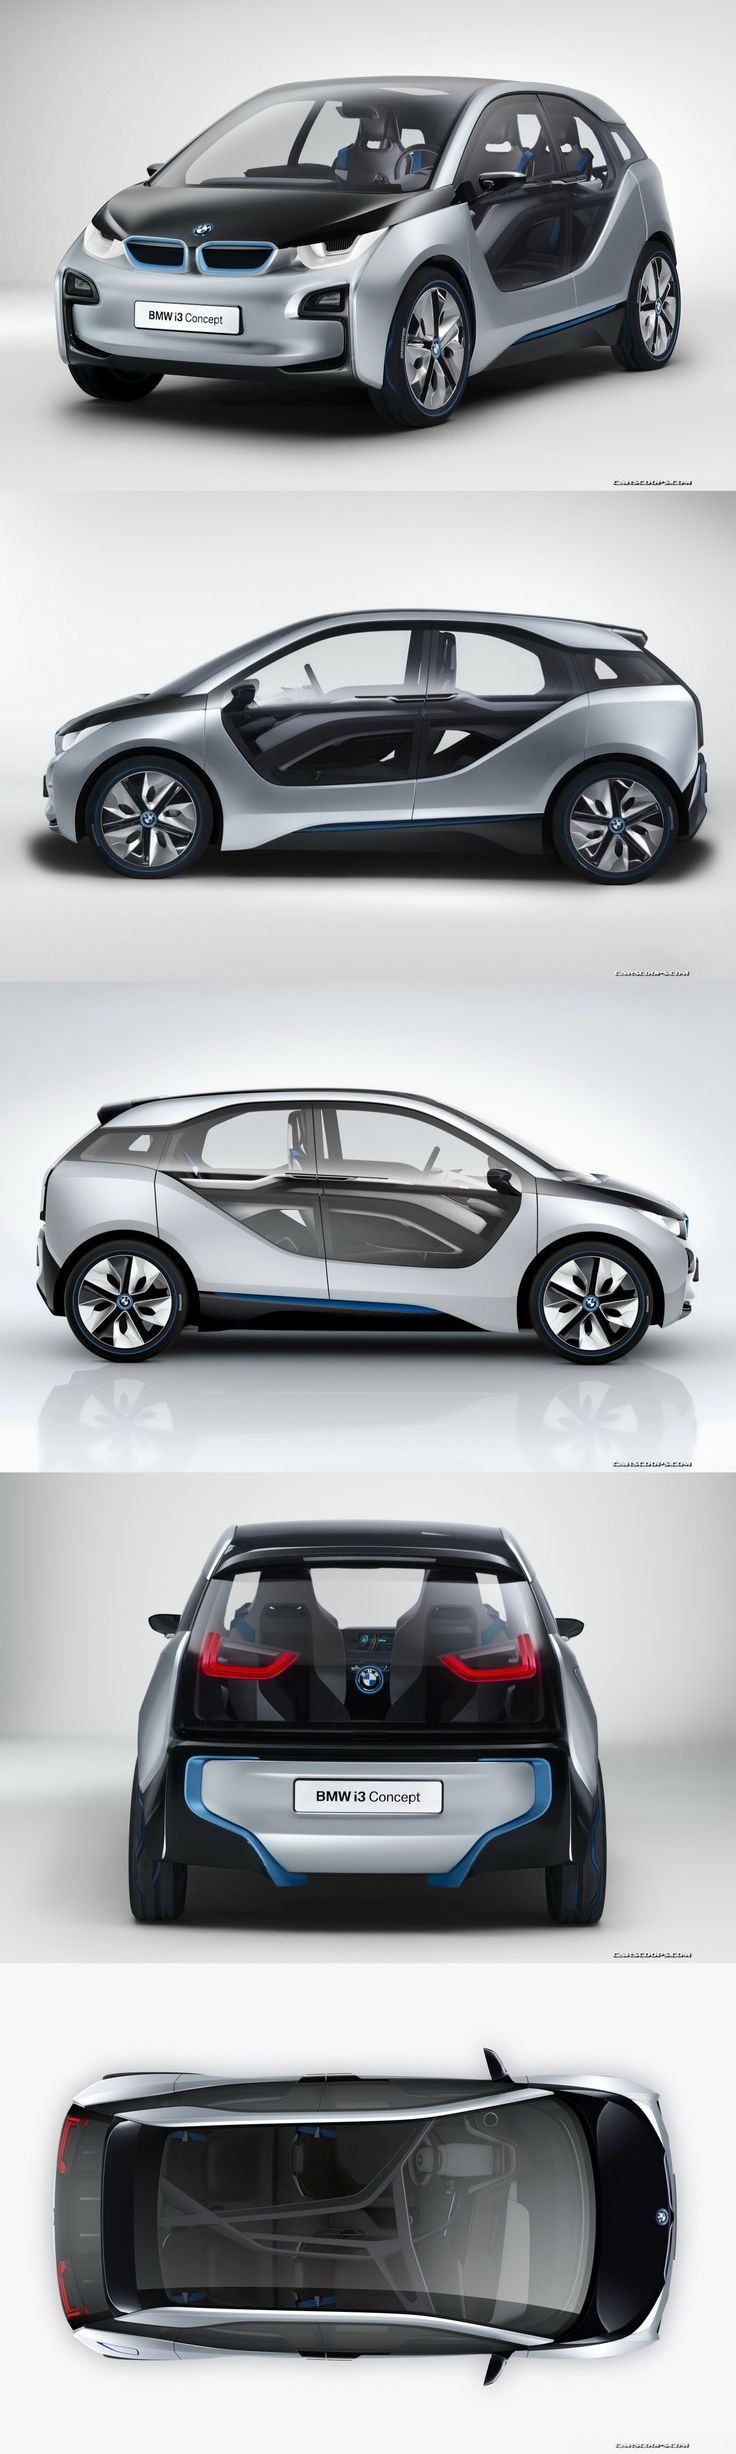 BMW i3 https://www.amazon.co.uk/Baby-Car-Mirror-Shatterproof-Installation/dp/B06XHG6SSY/ref=sr_1_2?ie=UTF8&qid=1499074433&sr=8-2&keywords=Kingseye